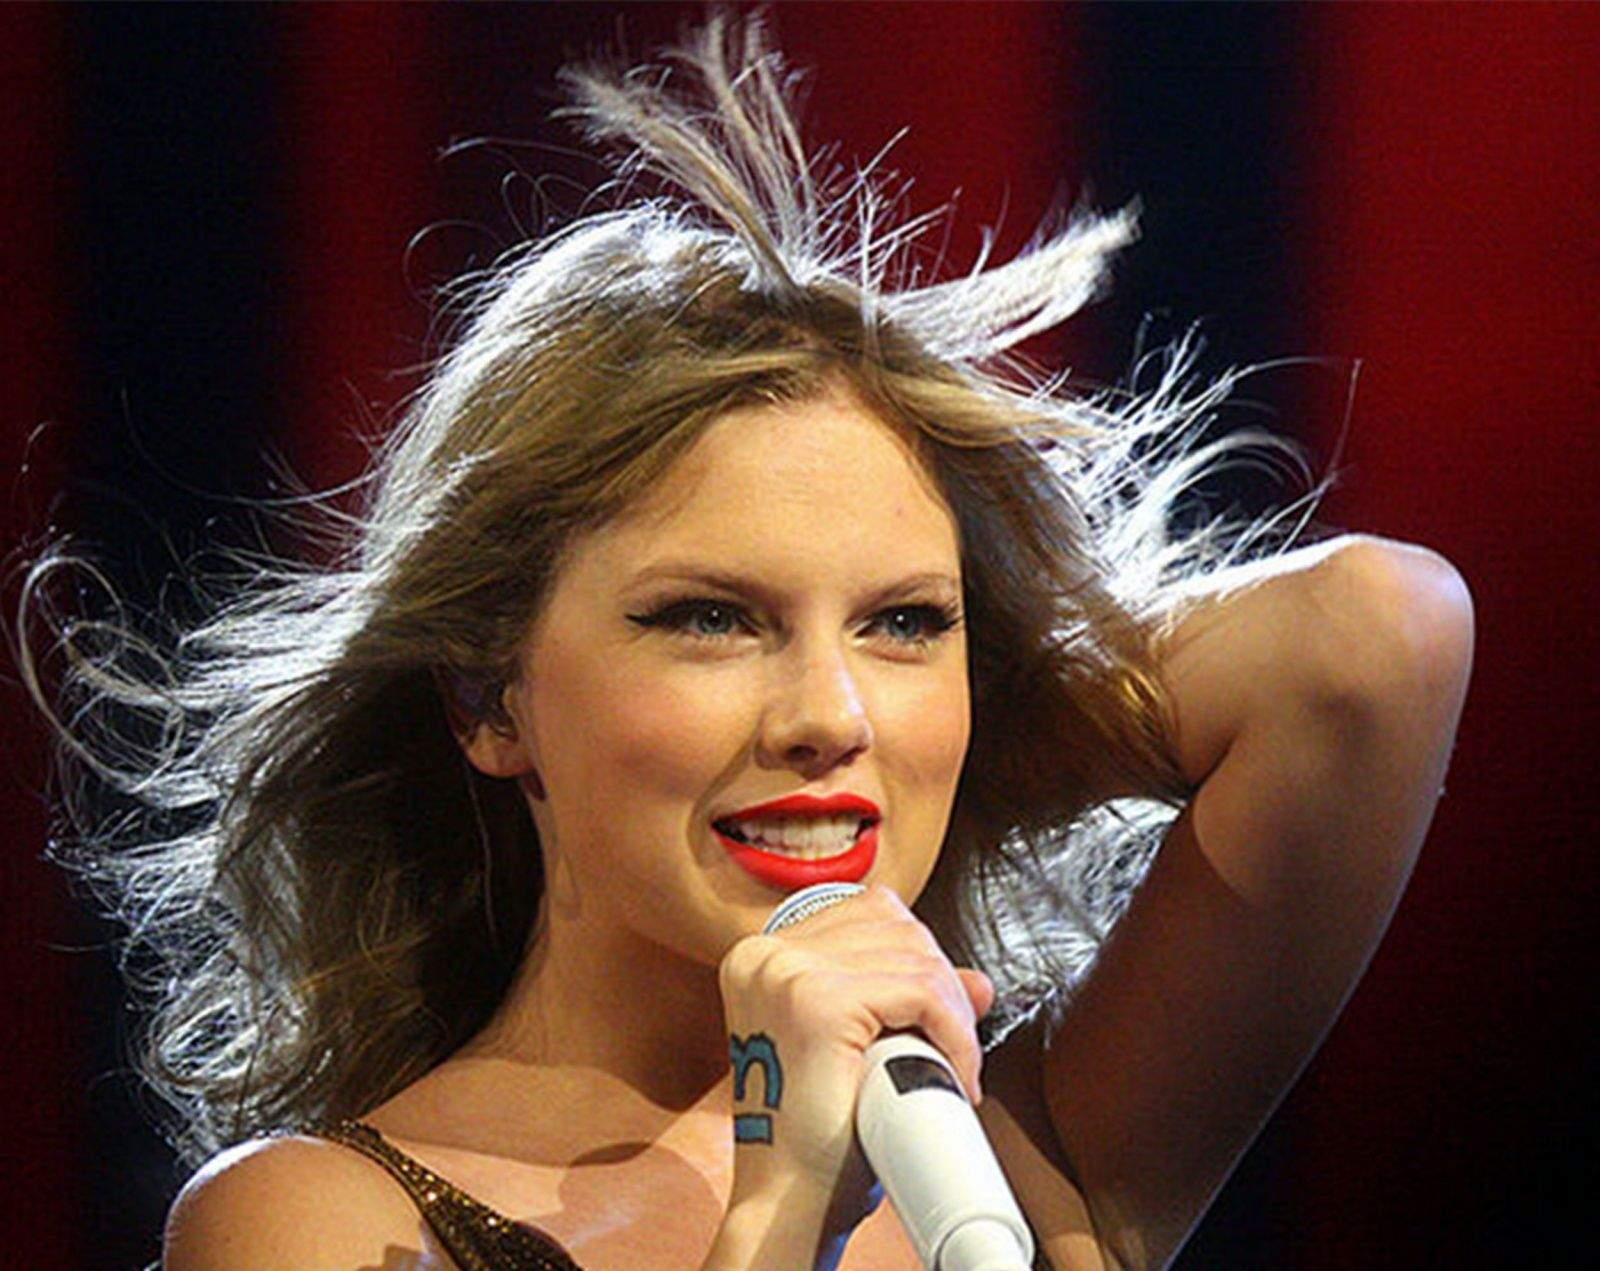 Taylor Swift criticized Apple for initially not paying artistst during the trial period for Apple Music.